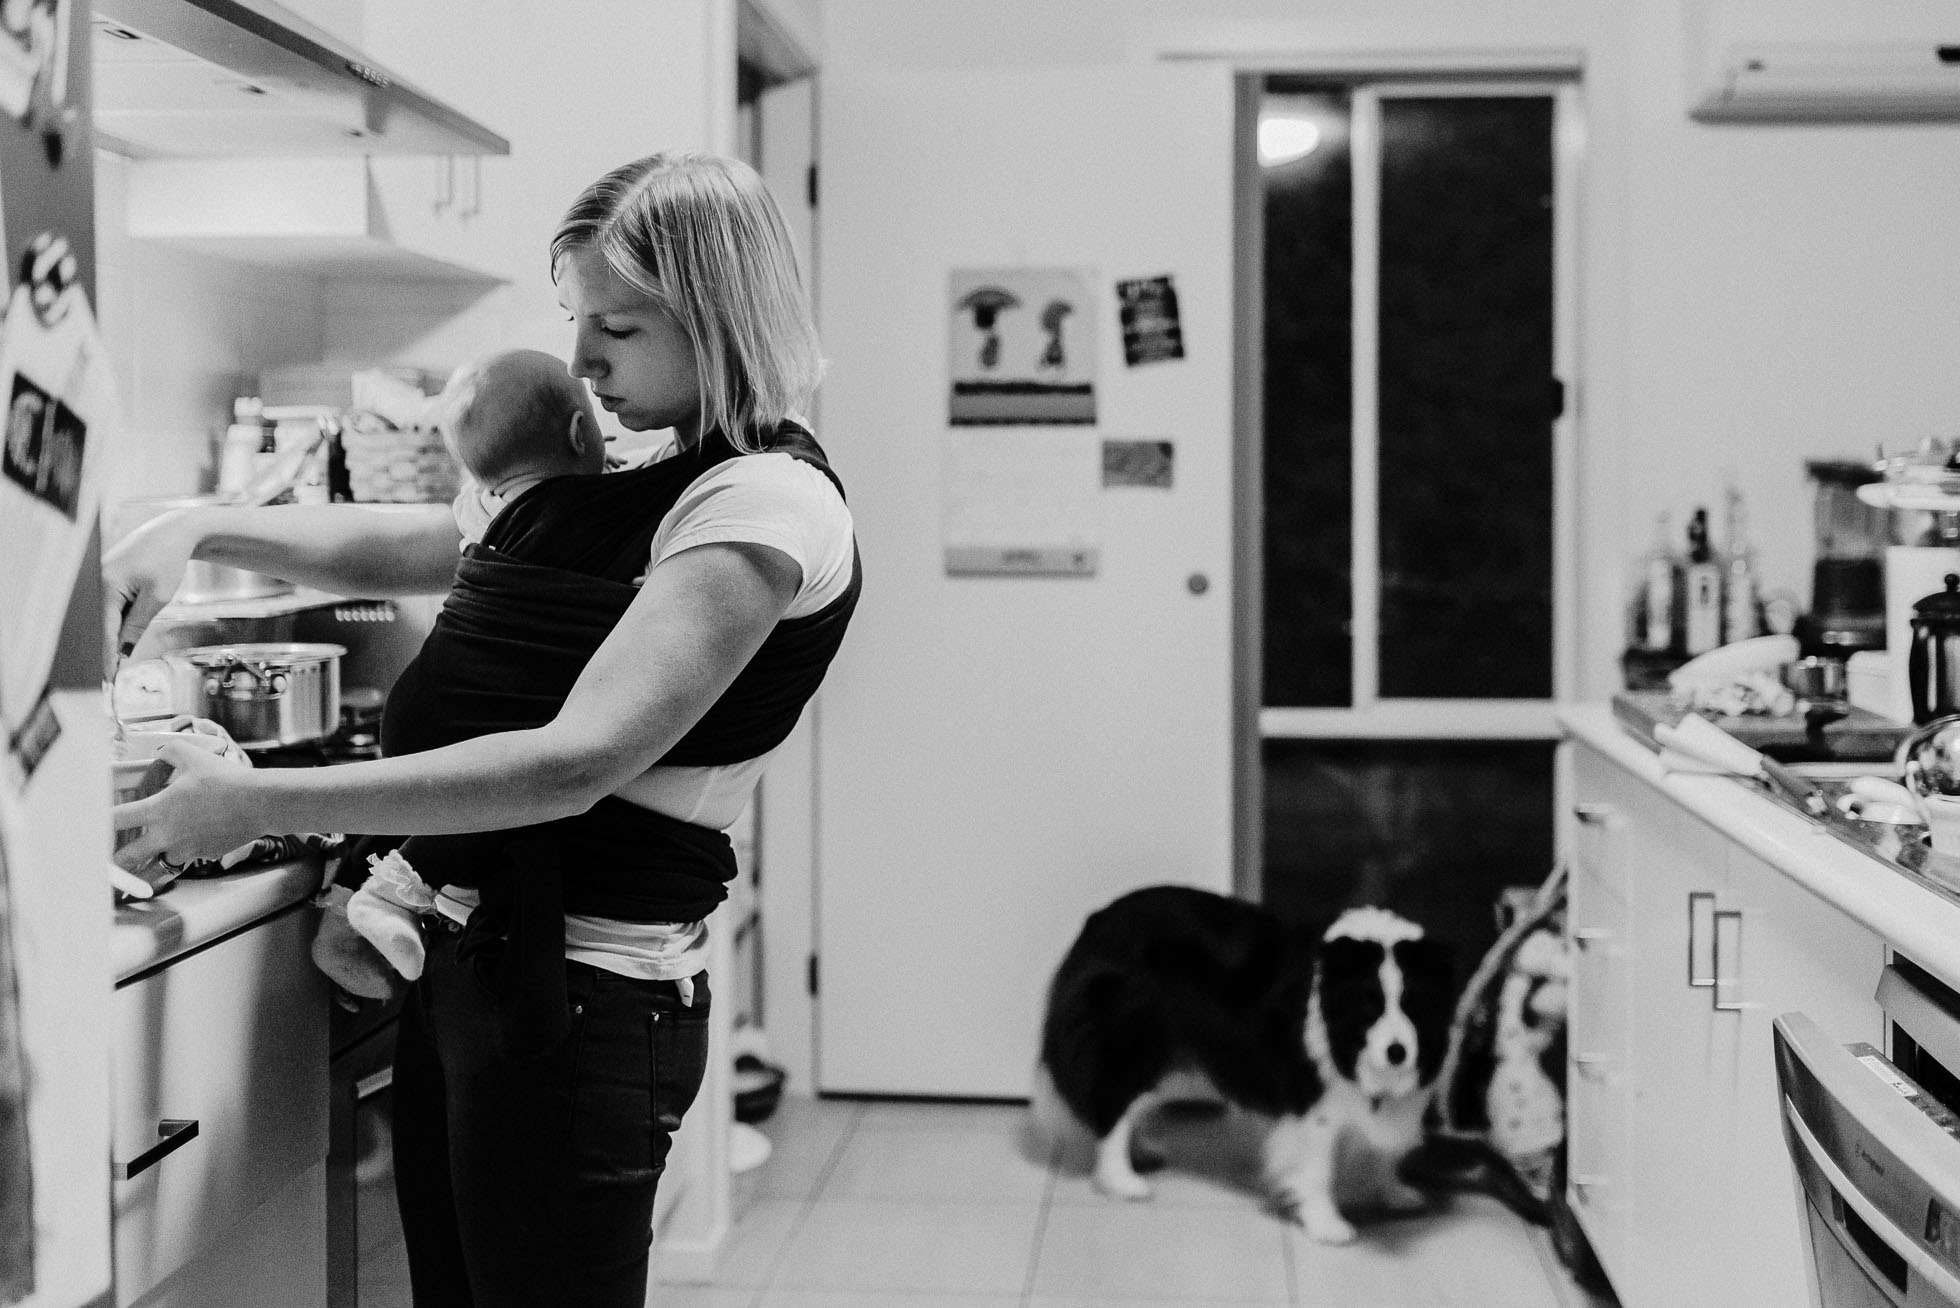 self-portrait-with-baby-and-dog-cooking-in-the-kitchen.jpg